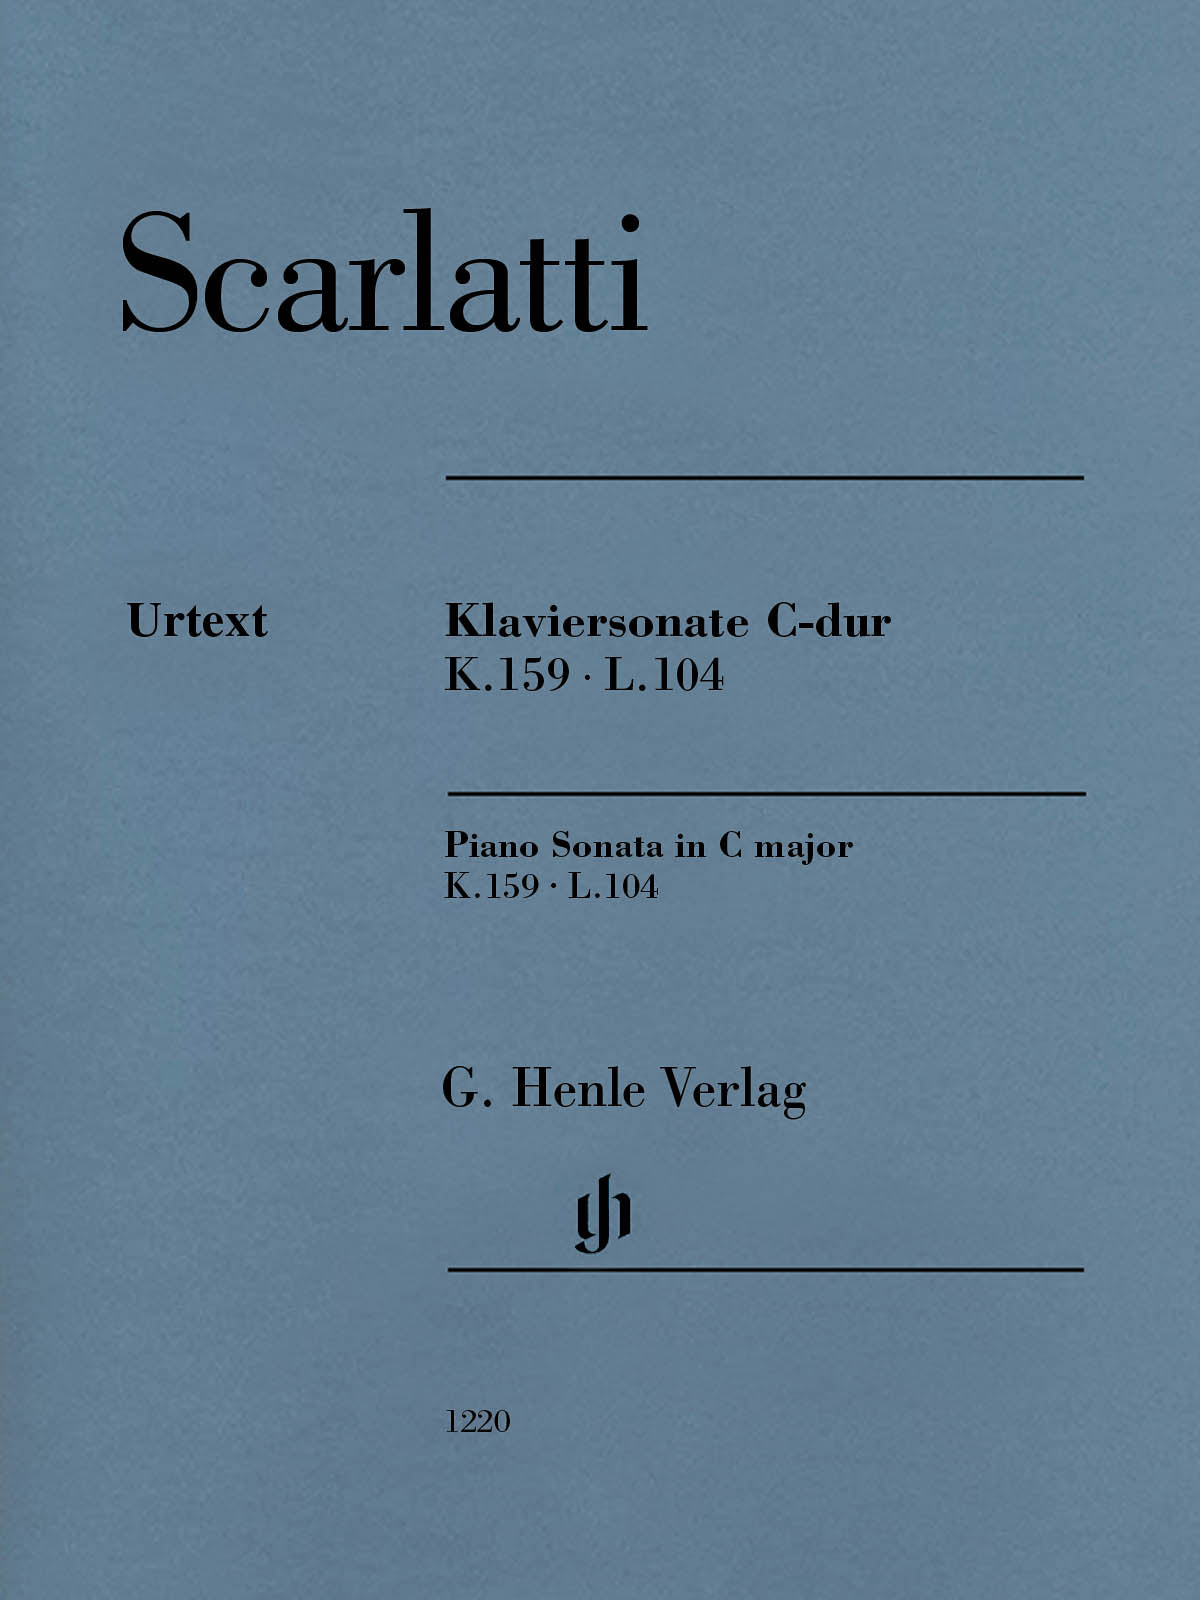 Scarlatti: Piano Sonata in C Major K. 159, L. 104